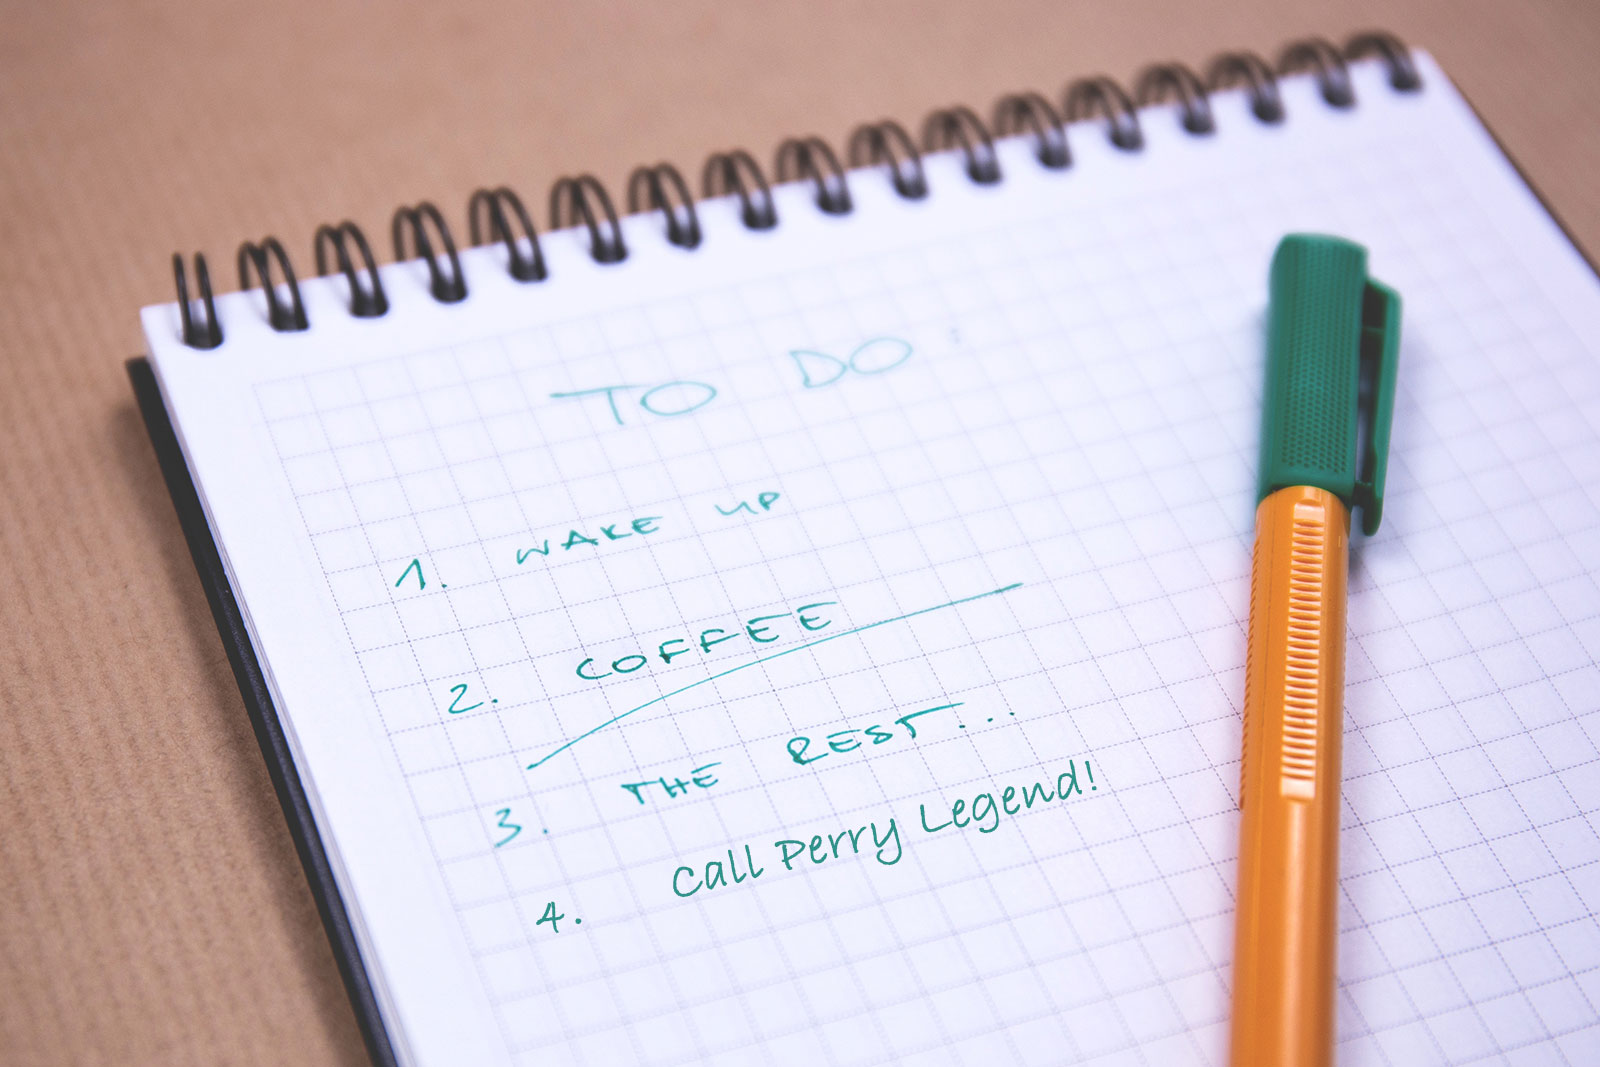 2021 New Year Checklist for Your Vehicle Maintenance Perry Legend Collision Repair Center in Columbia Missouri Automobile Repair Shop